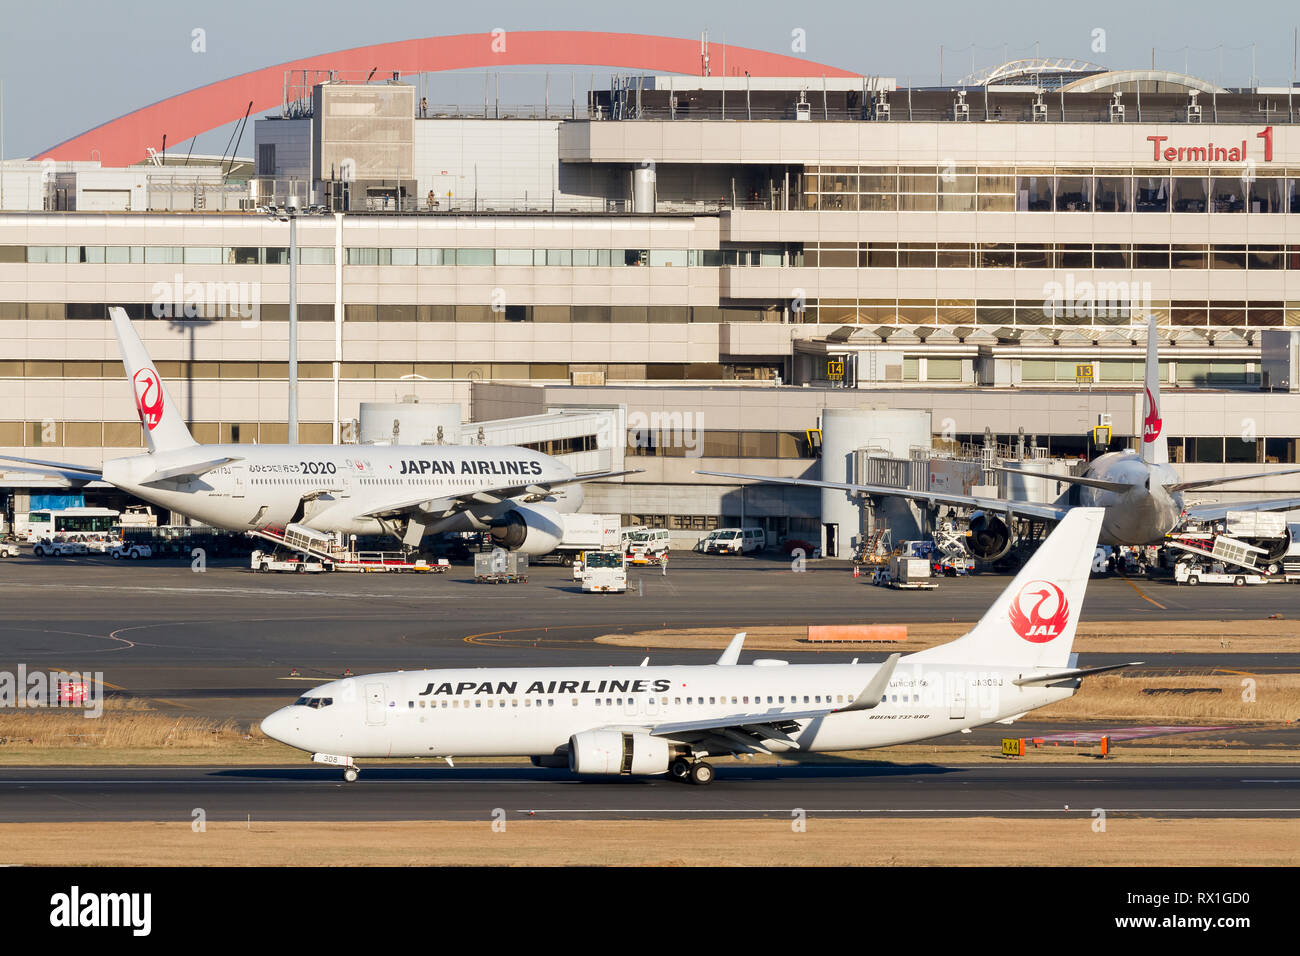 A Japan Airlines (JAL) 737-846 landing in front of Terminal 1 at Haneda International Airport, Tokyo, Japan. Friday February 1st 2019 - Stock Image